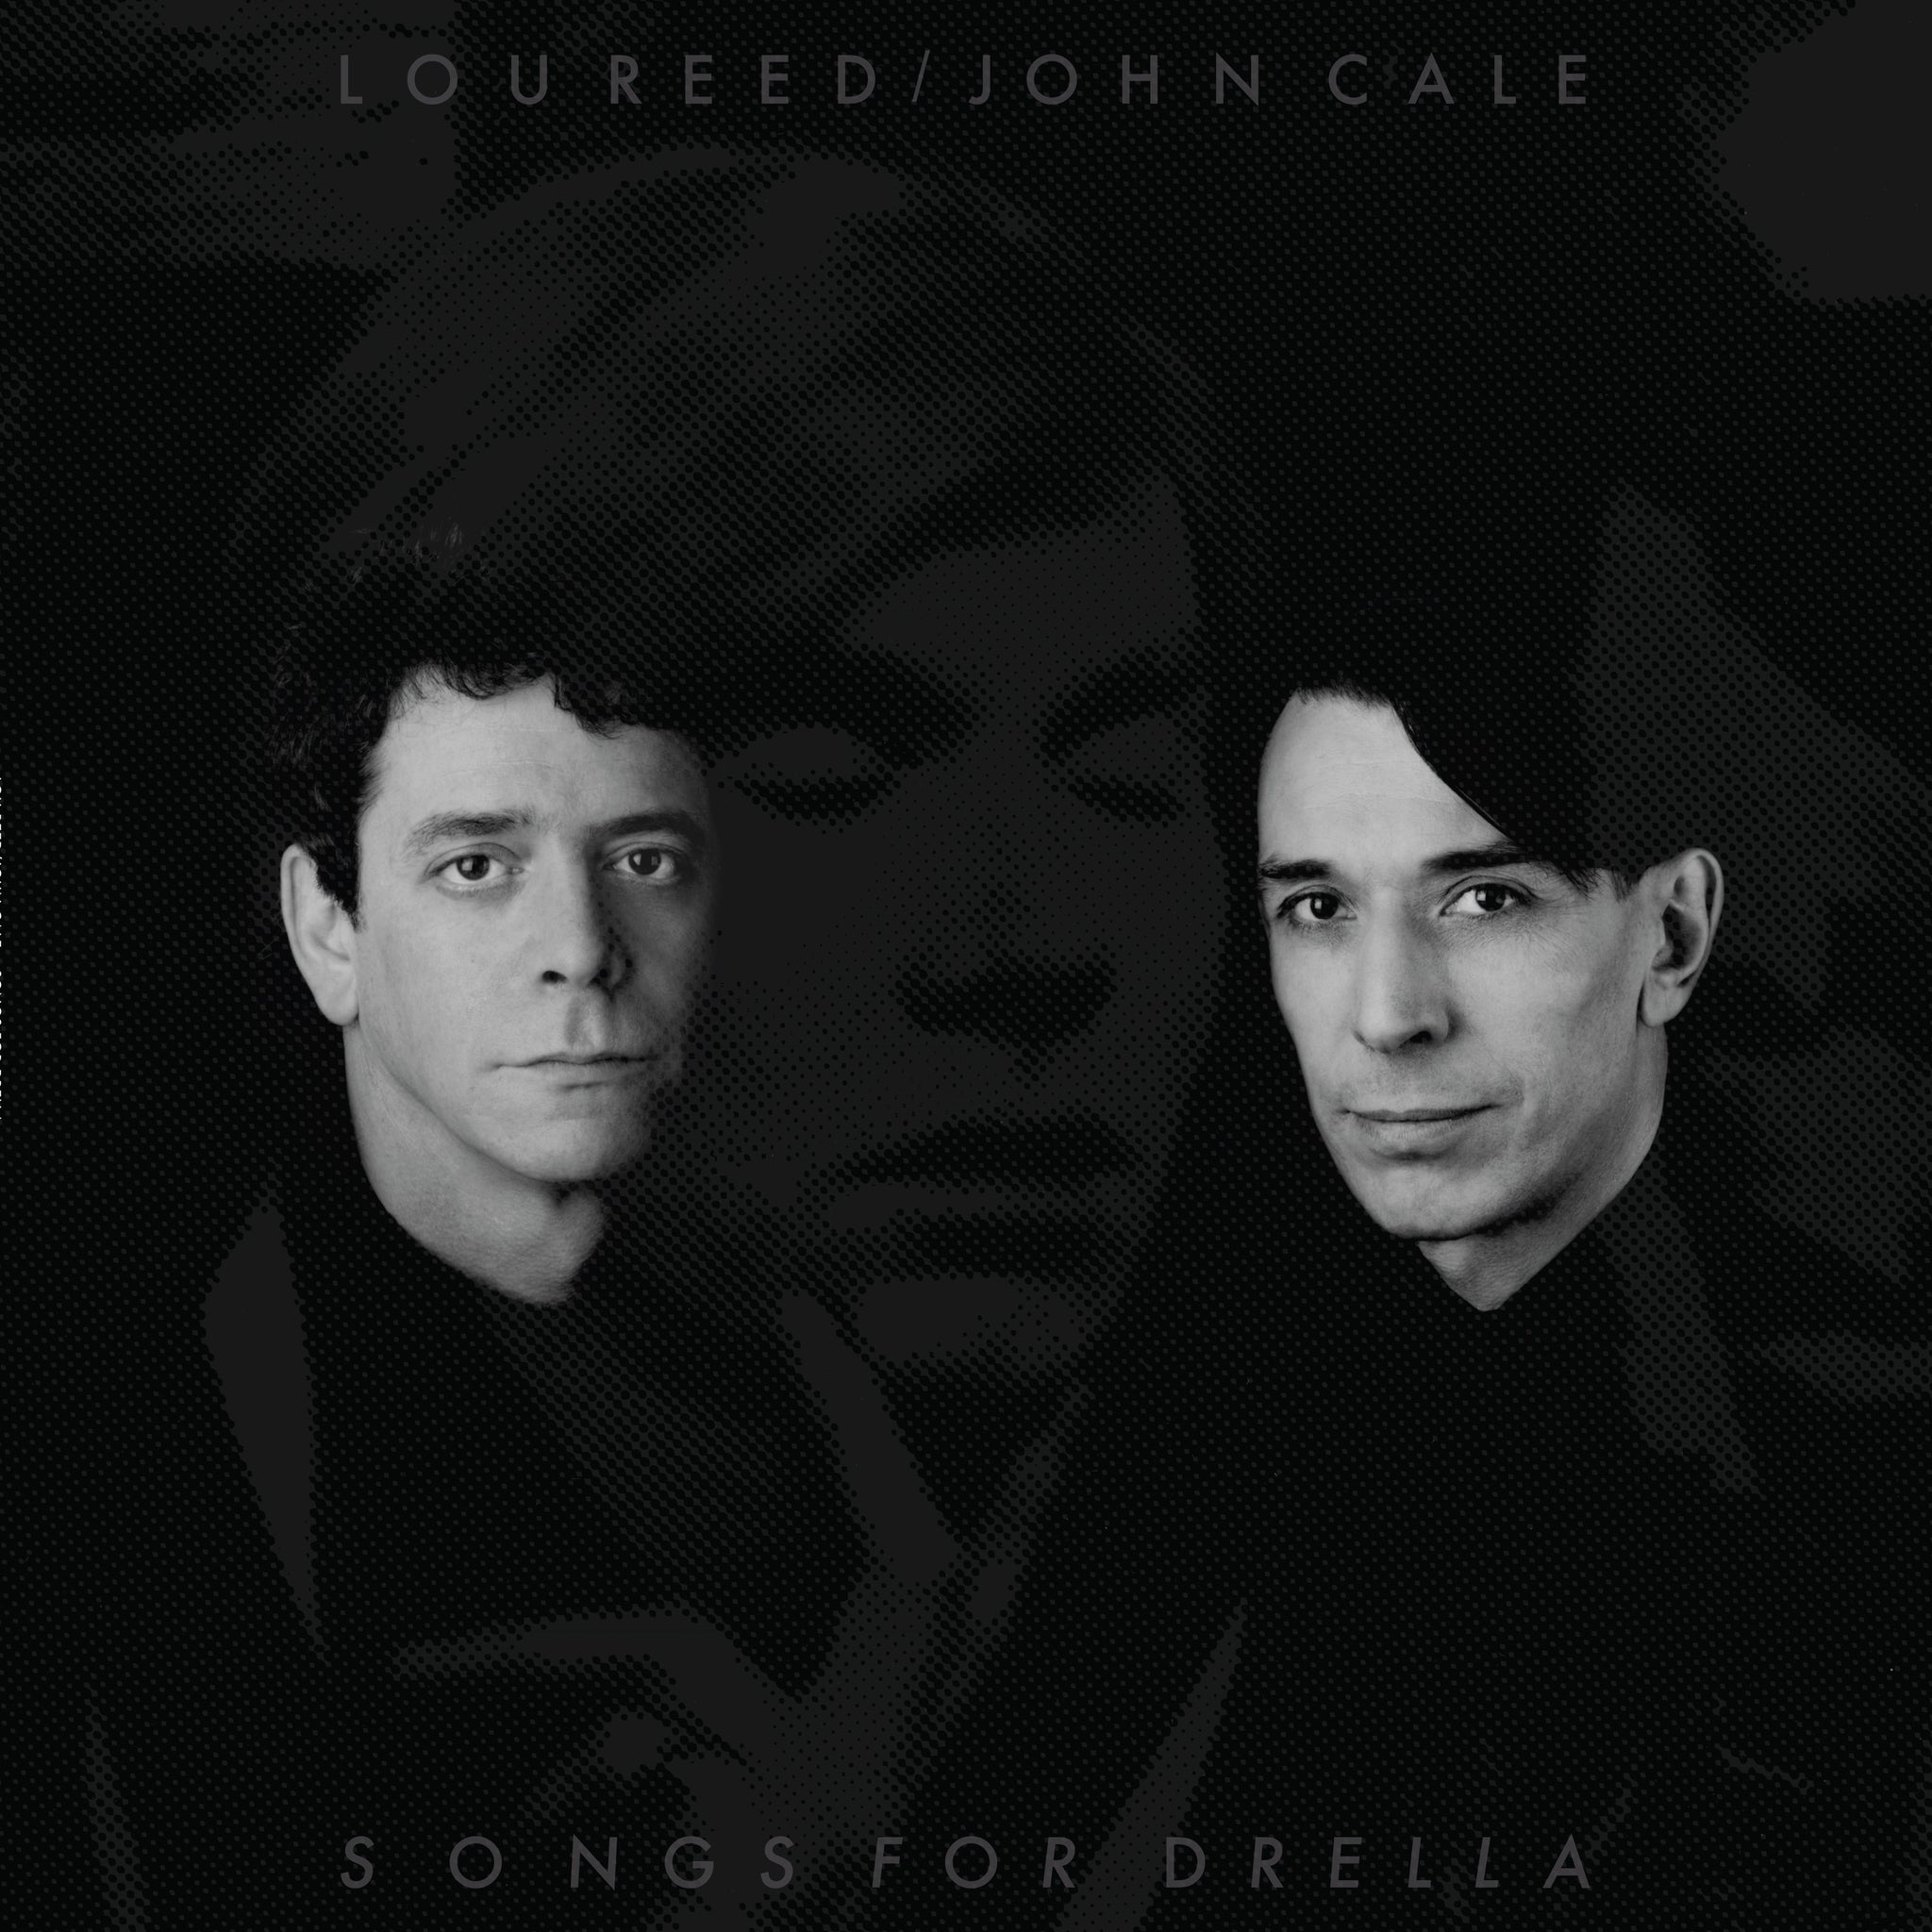 Lou Reed - Songs for Drella